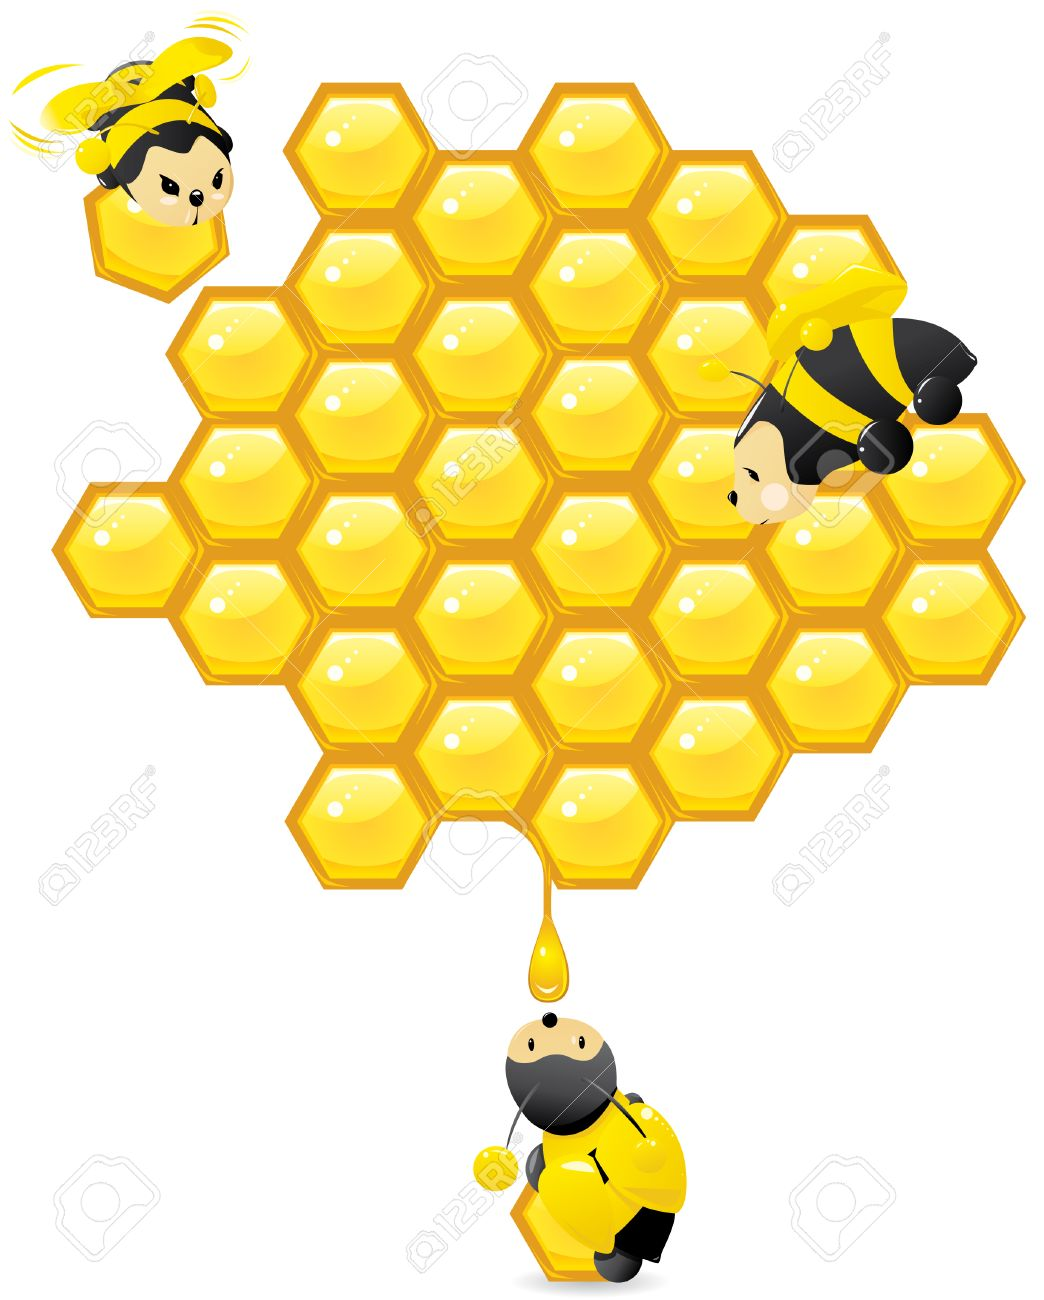 407 Honeycomb free clipart.